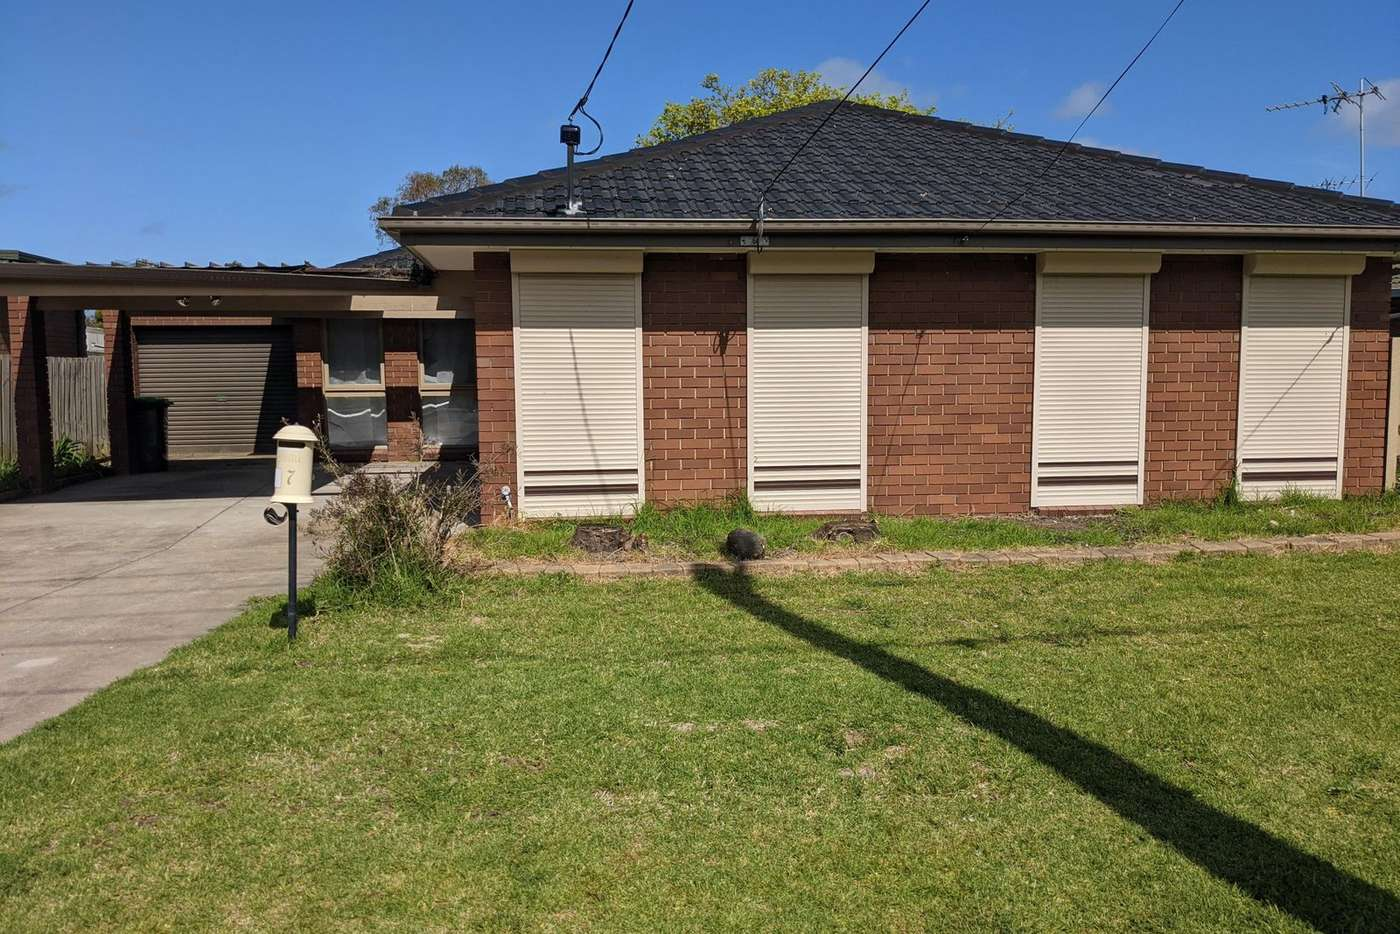 Main view of Homely house listing, 7 Drury Lane, Hoppers Crossing VIC 3029